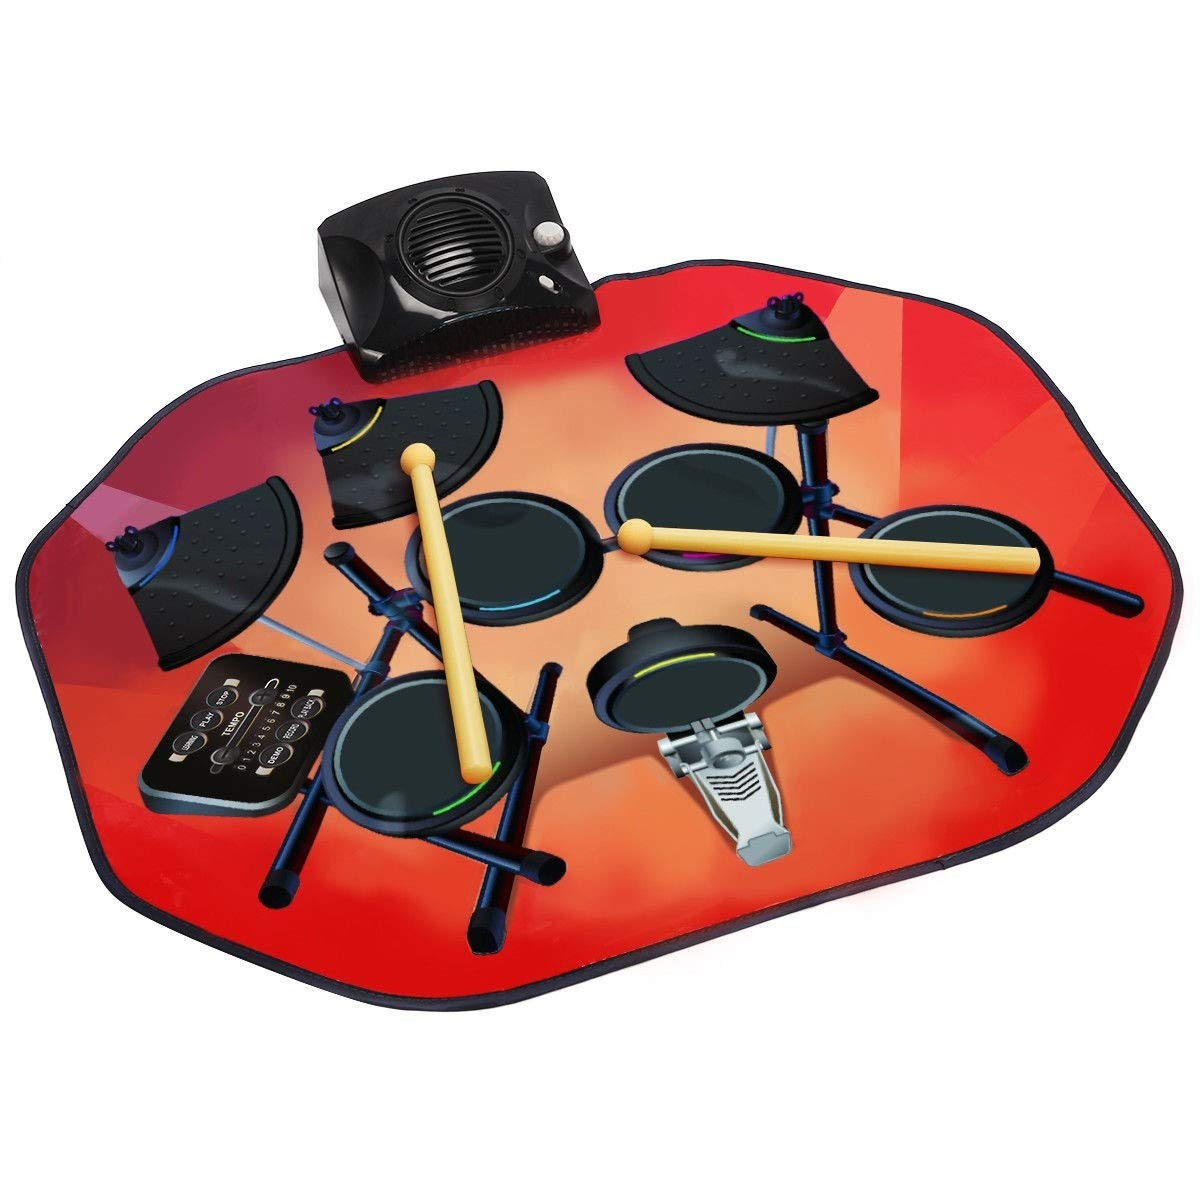 USA_BEST_SELLER Electronic Glowing Play Drum Mats Kit Set with MP3 Cable Great Holiday Birthday Gift for Kids by USA_BEST_SELLER (Image #2)